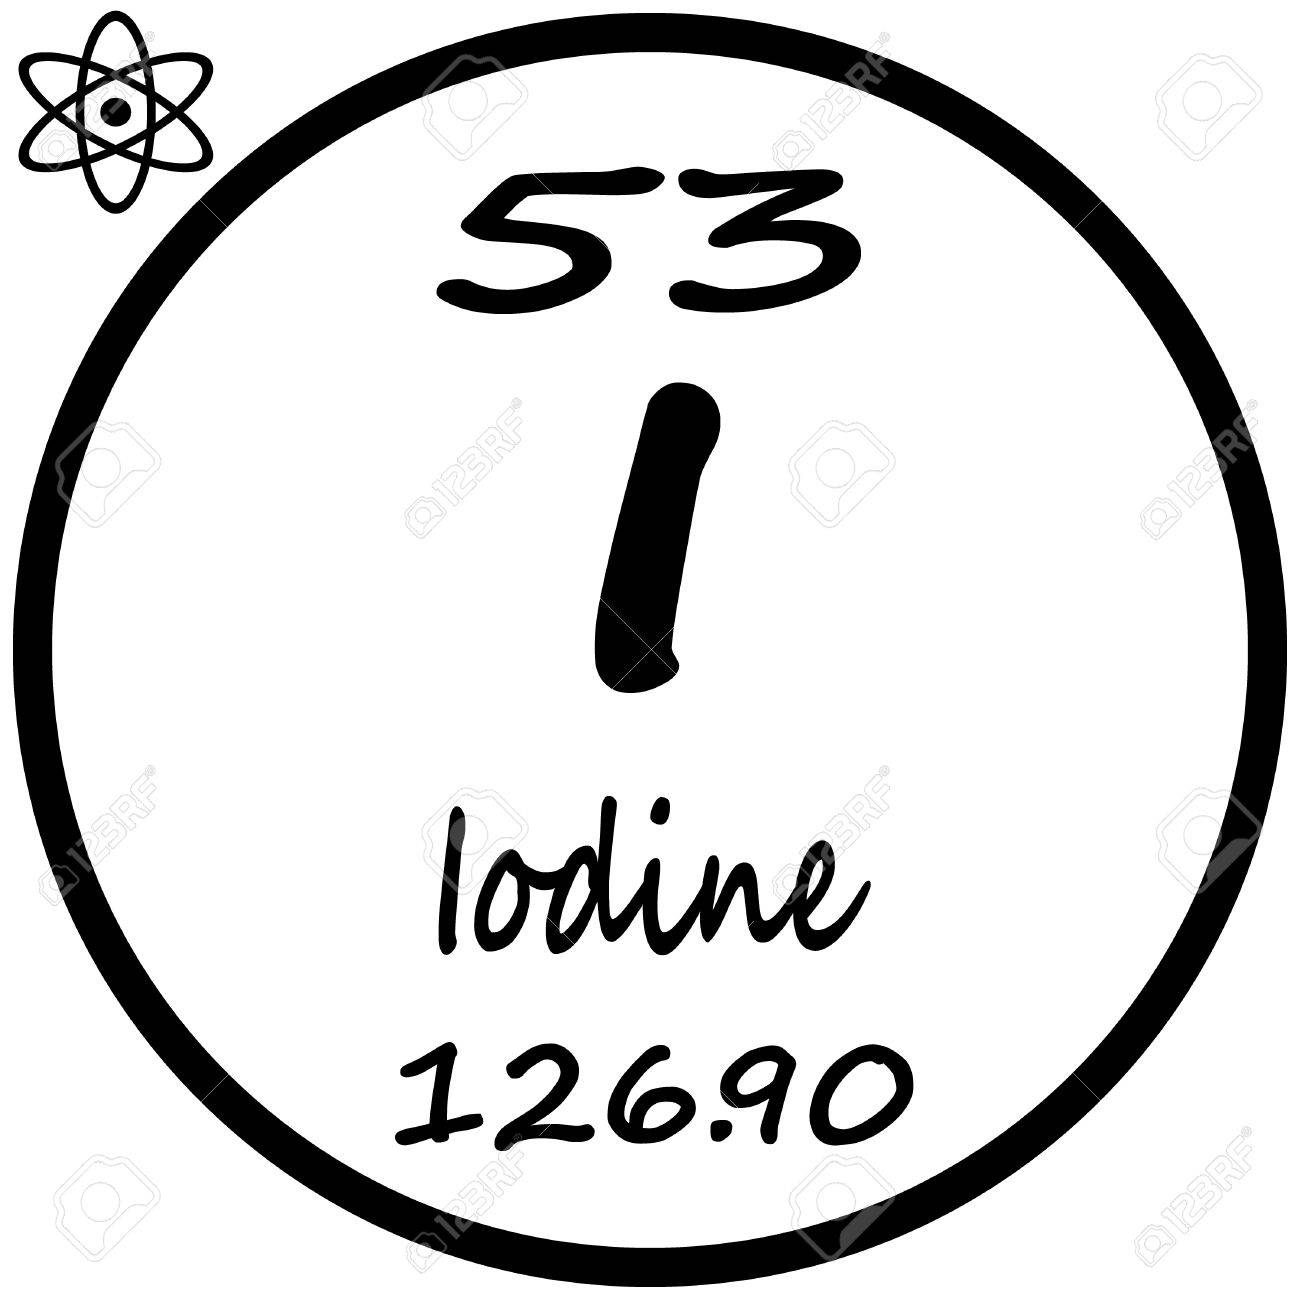 Periodic table of elements iodine royalty free cliparts vectors periodic table of elements iodine stock vector 53482380 gamestrikefo Choice Image